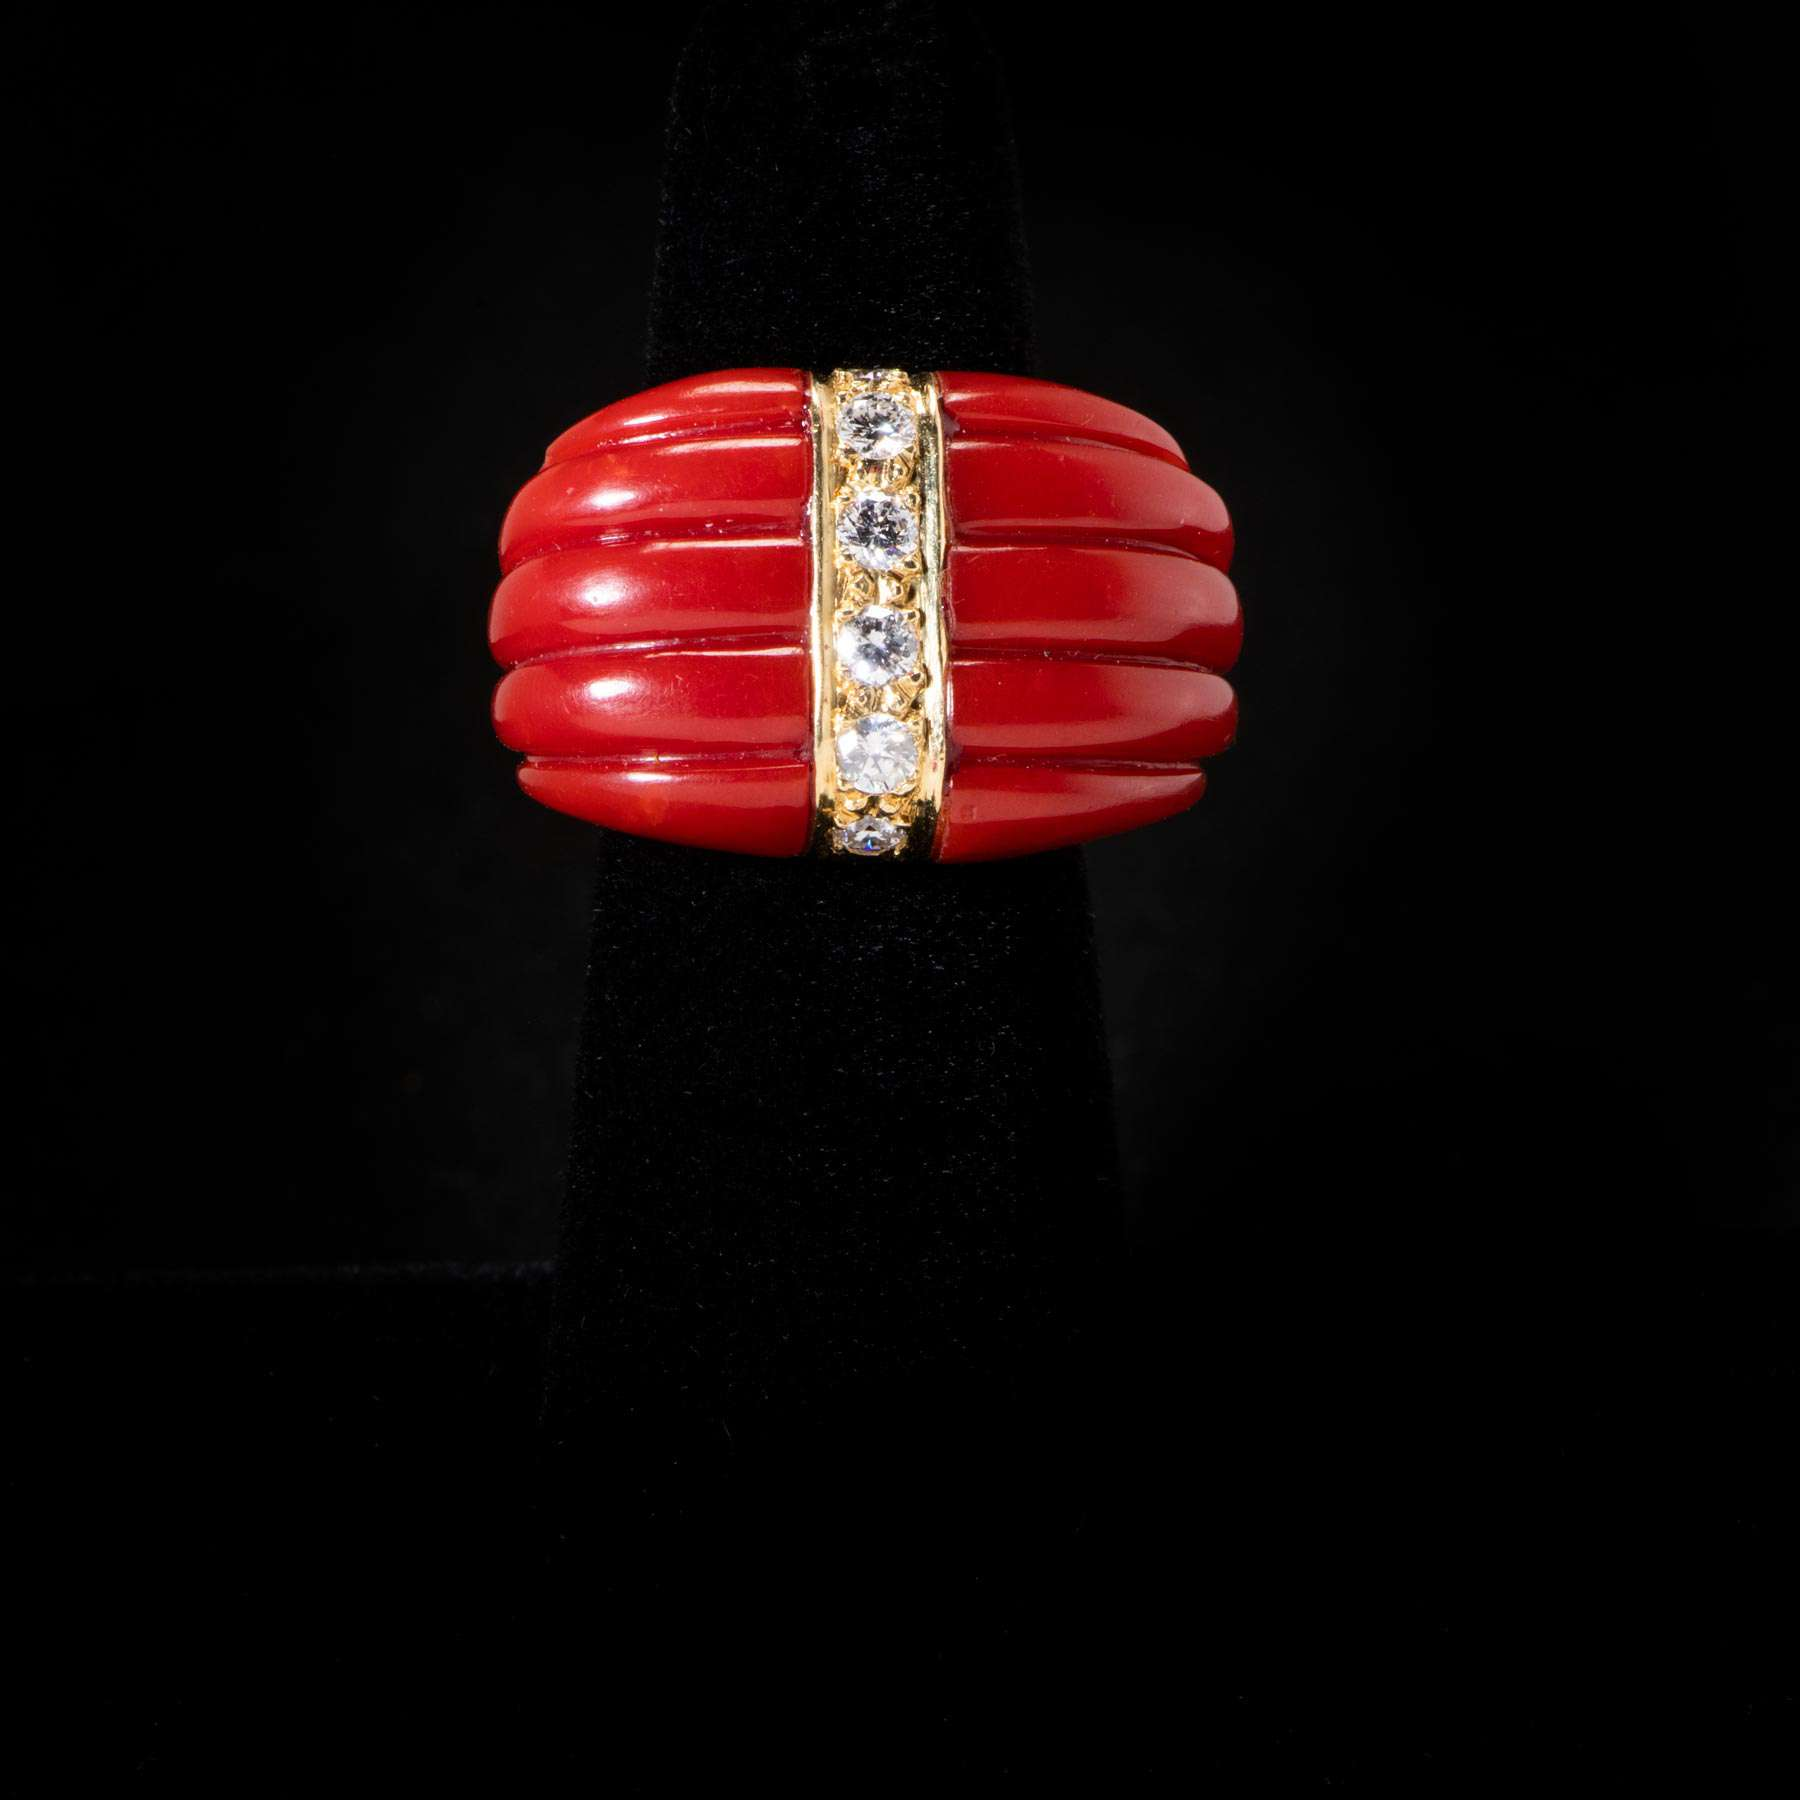 10-12OMIE 18K Y/G Oxblood Coral W/ .50Cts, Ring